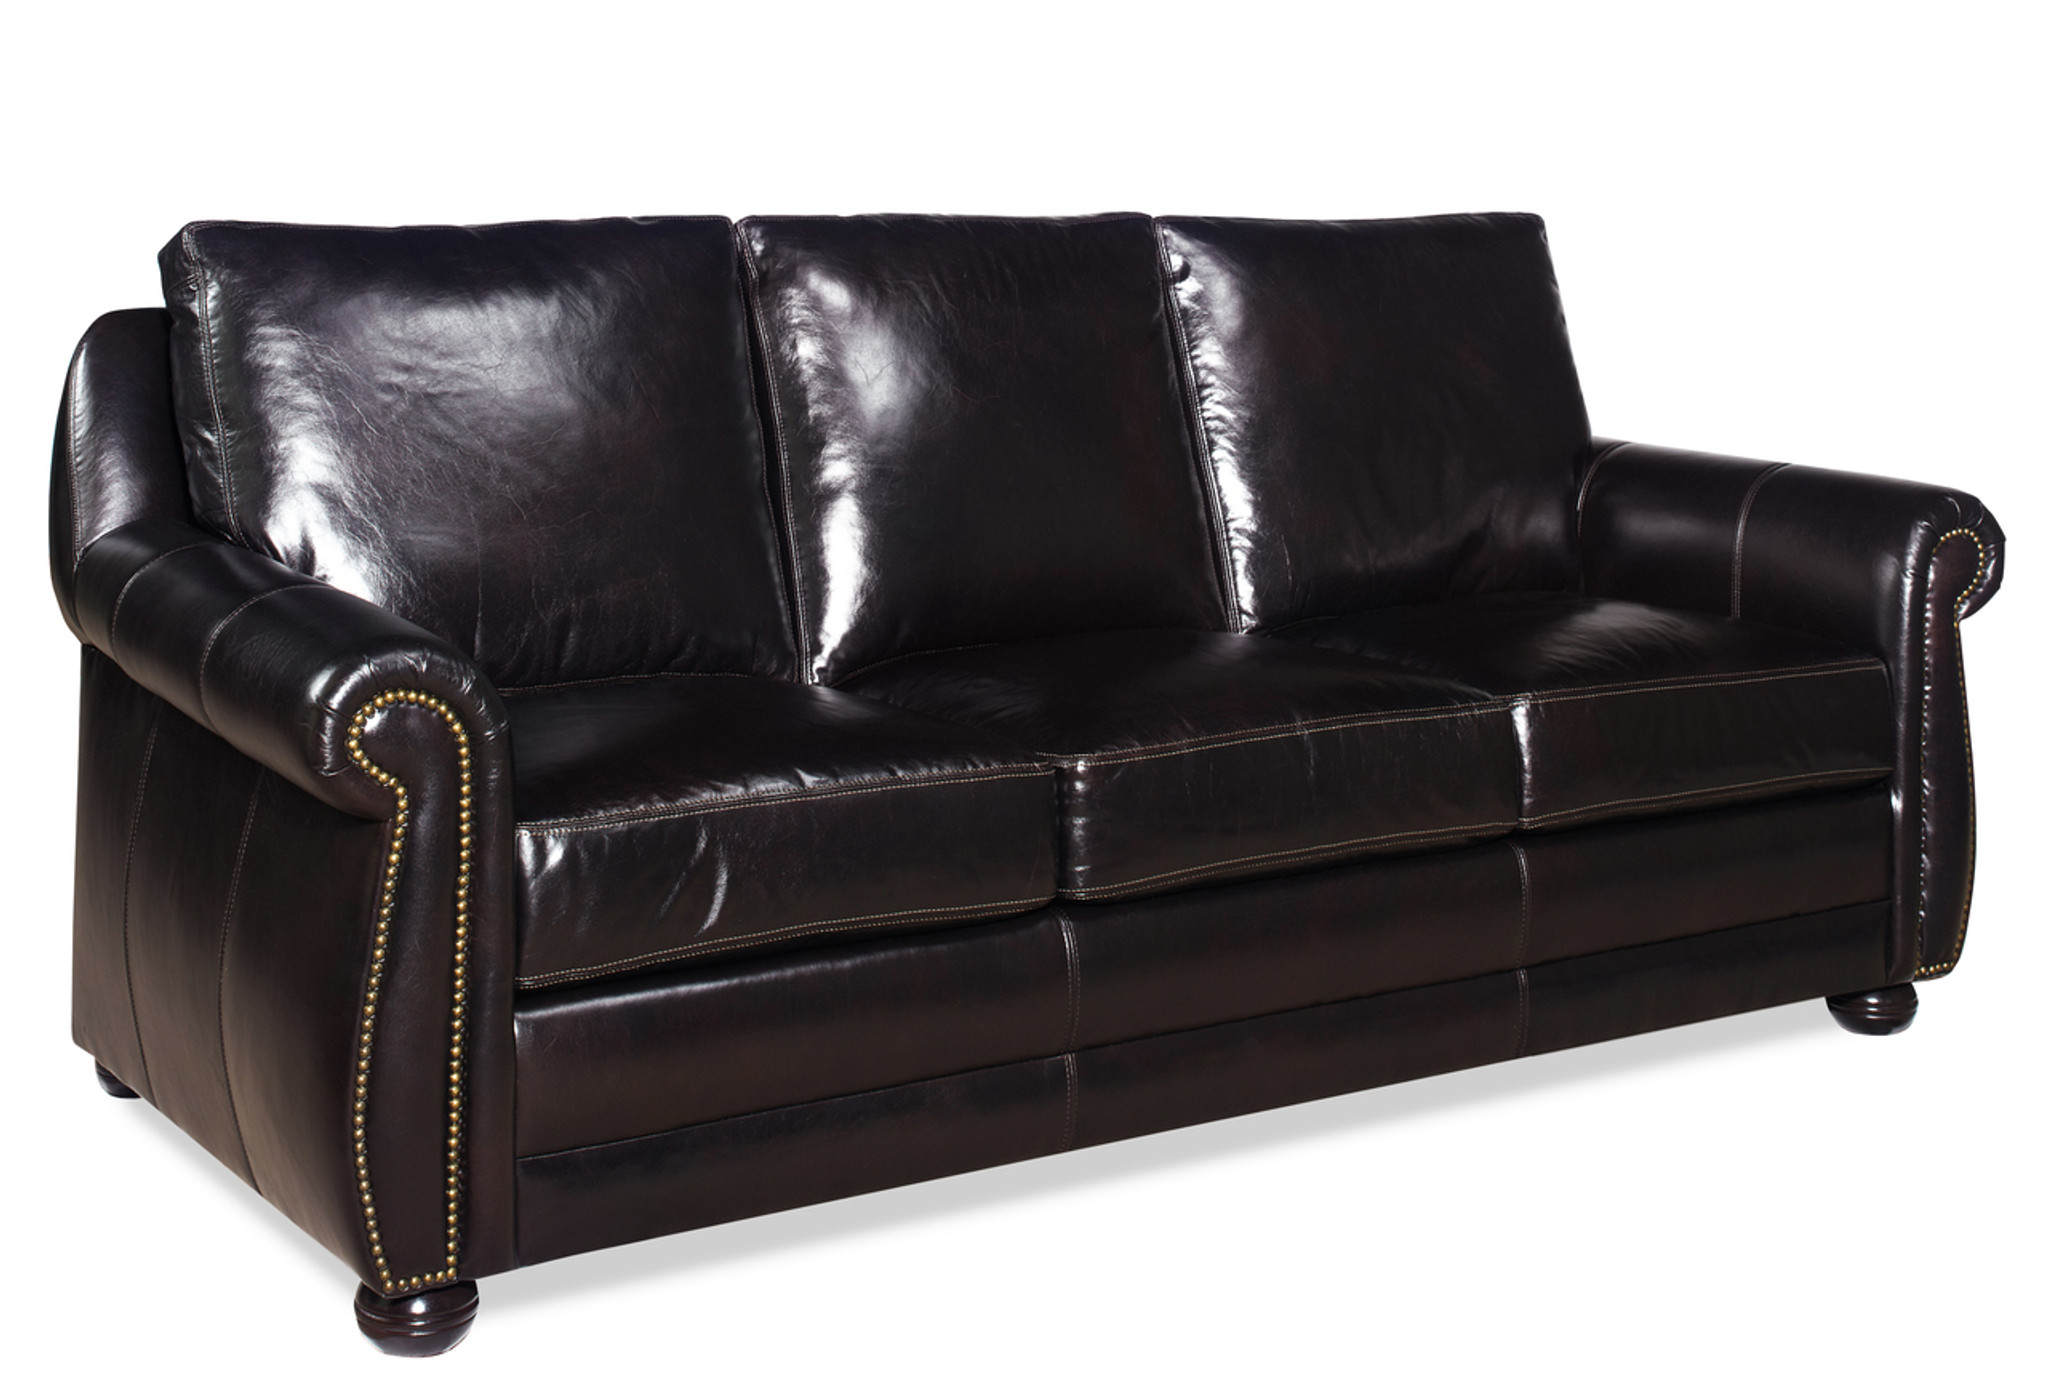 palmer sofa co great shelford leather american heritage custom made in the usa